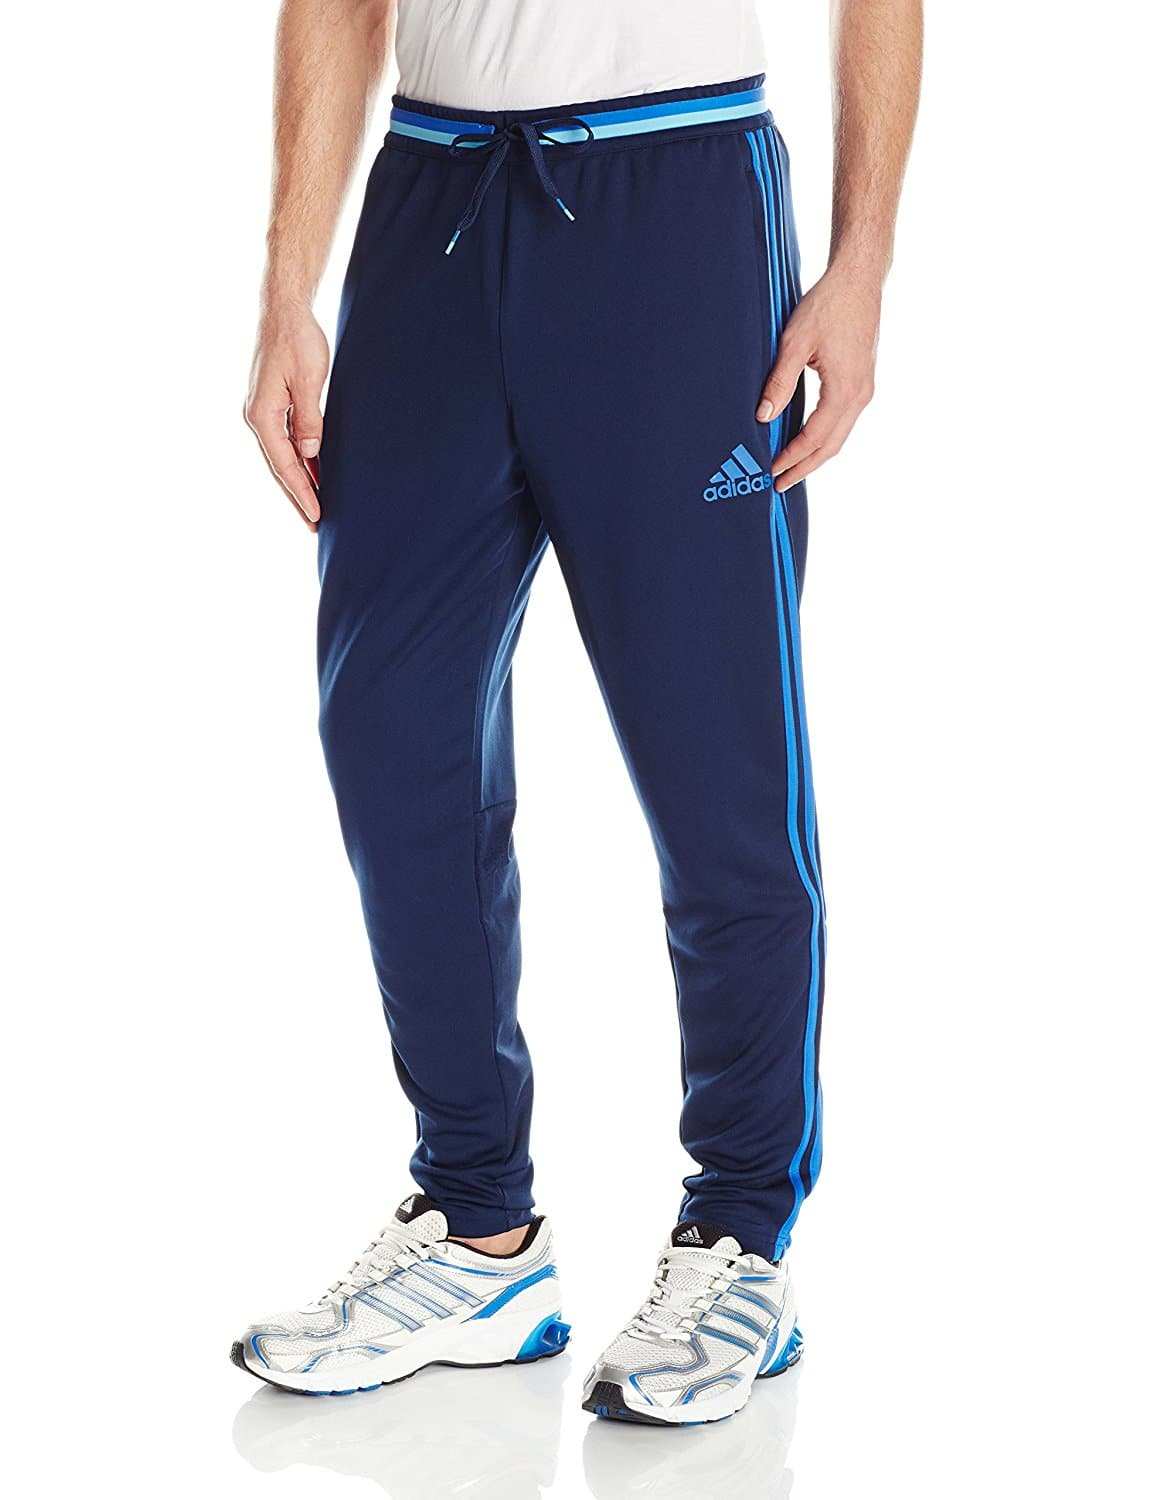 adidas Men's Condivo 16 Training Pants [Collegiate Navy/Blue] $27